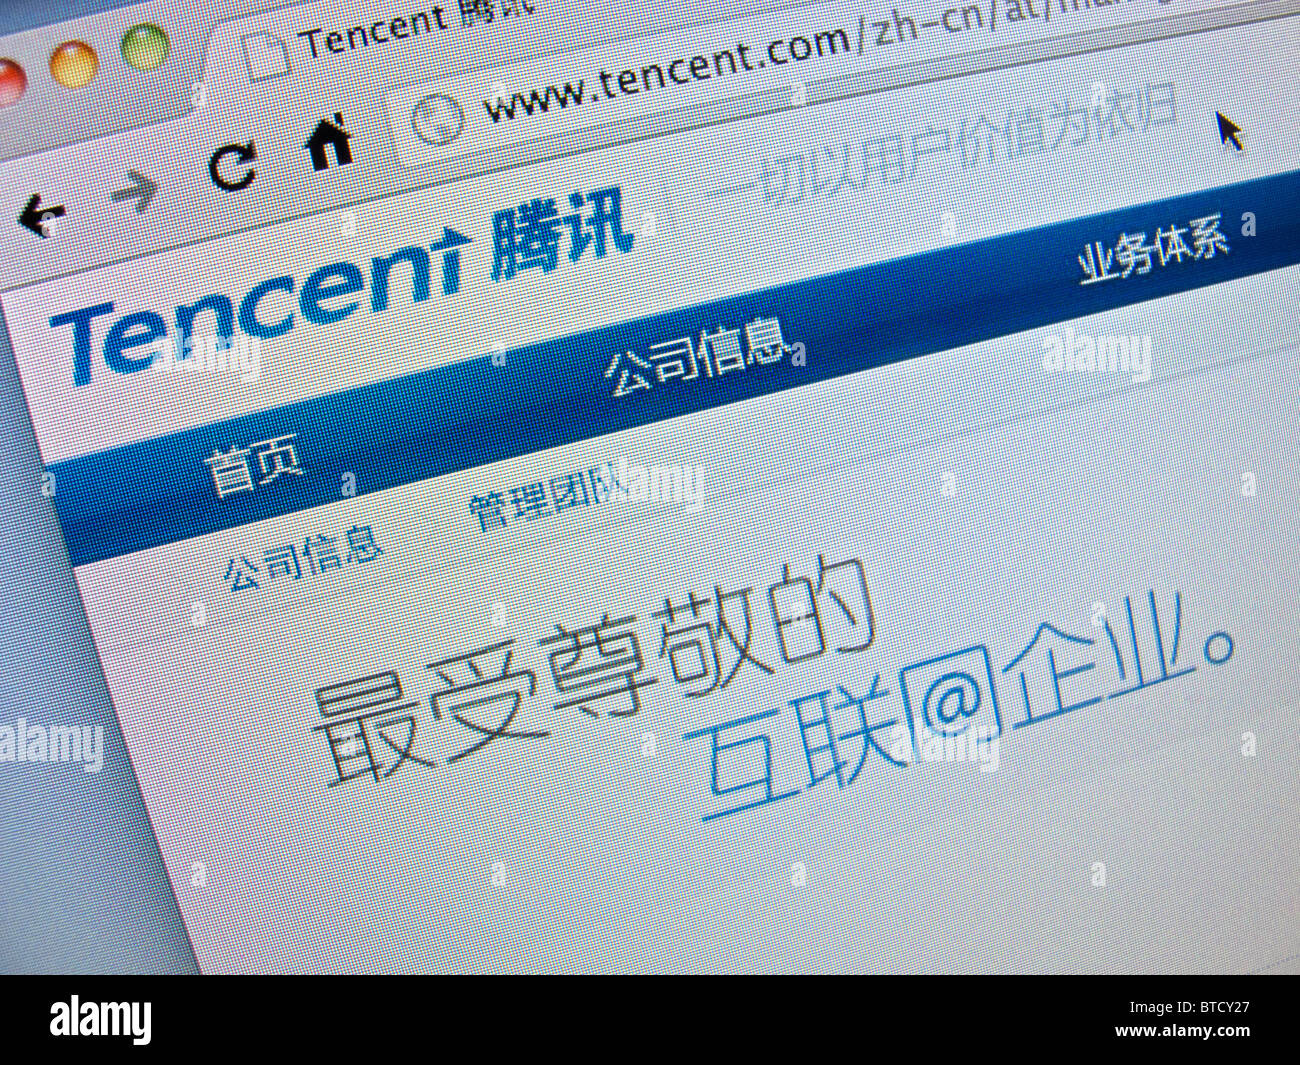 Detail of screenshot from Tencent Chinese internet website homepage - Stock Image